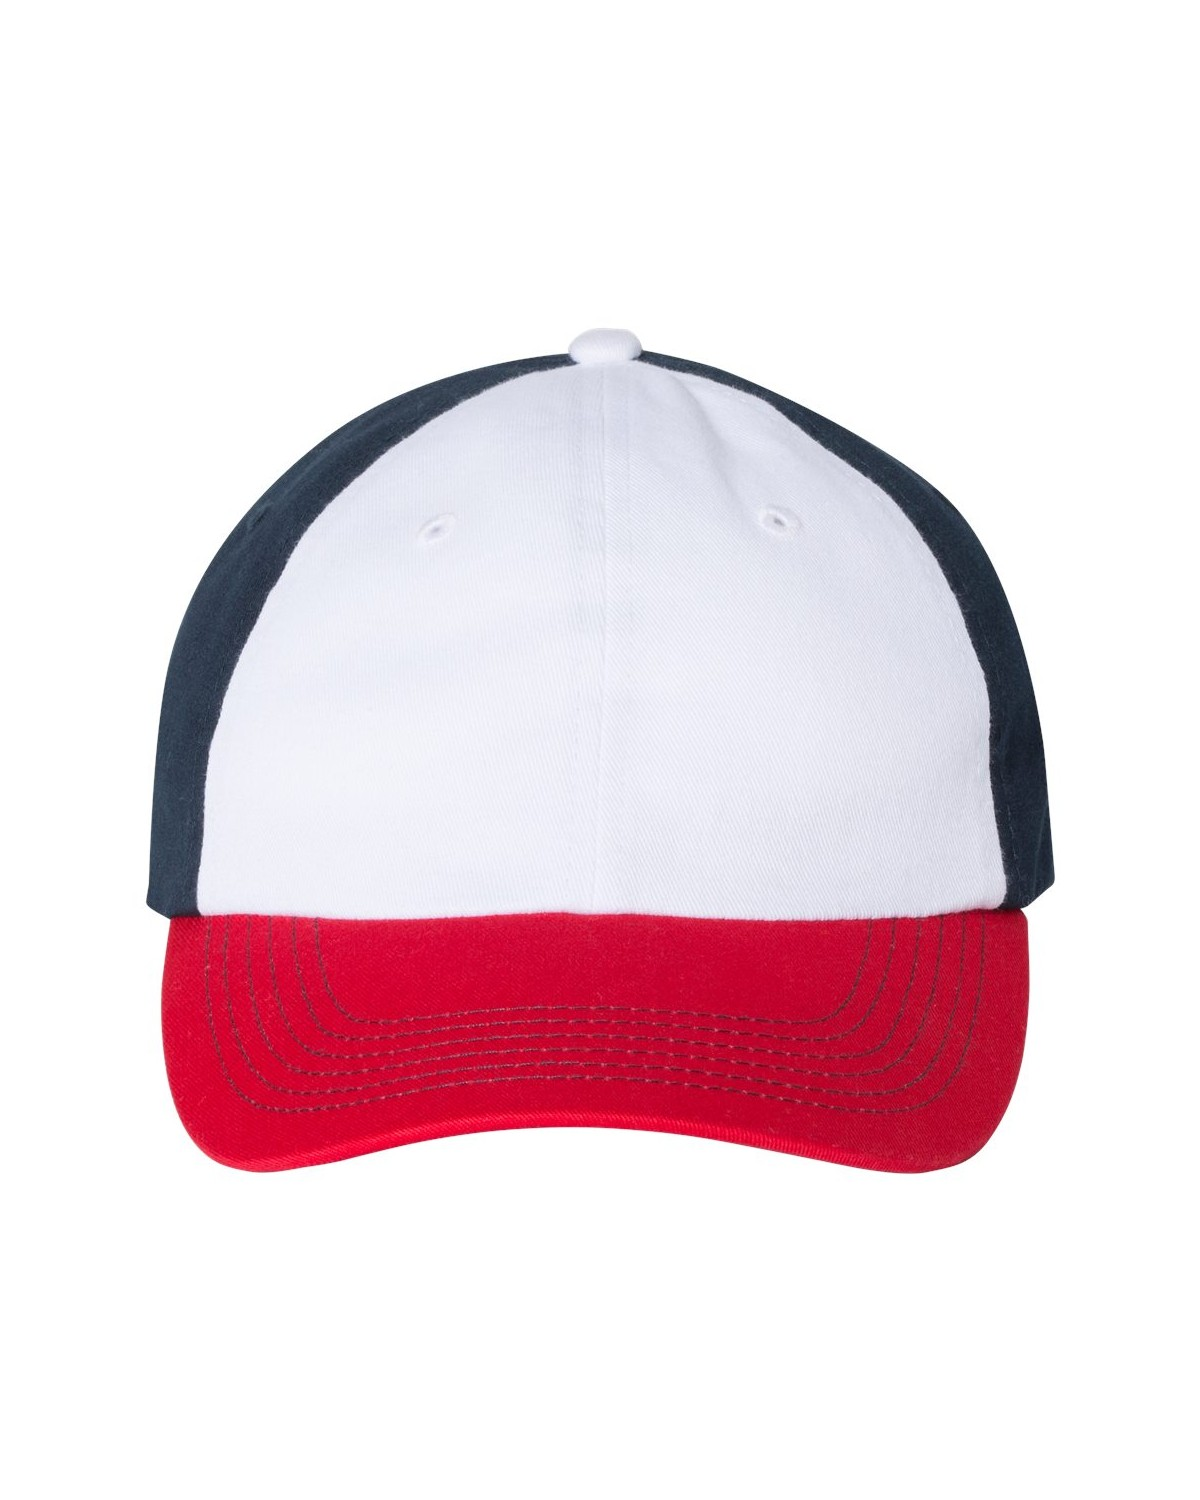 VC300A Valucap White/ Red/ Navy